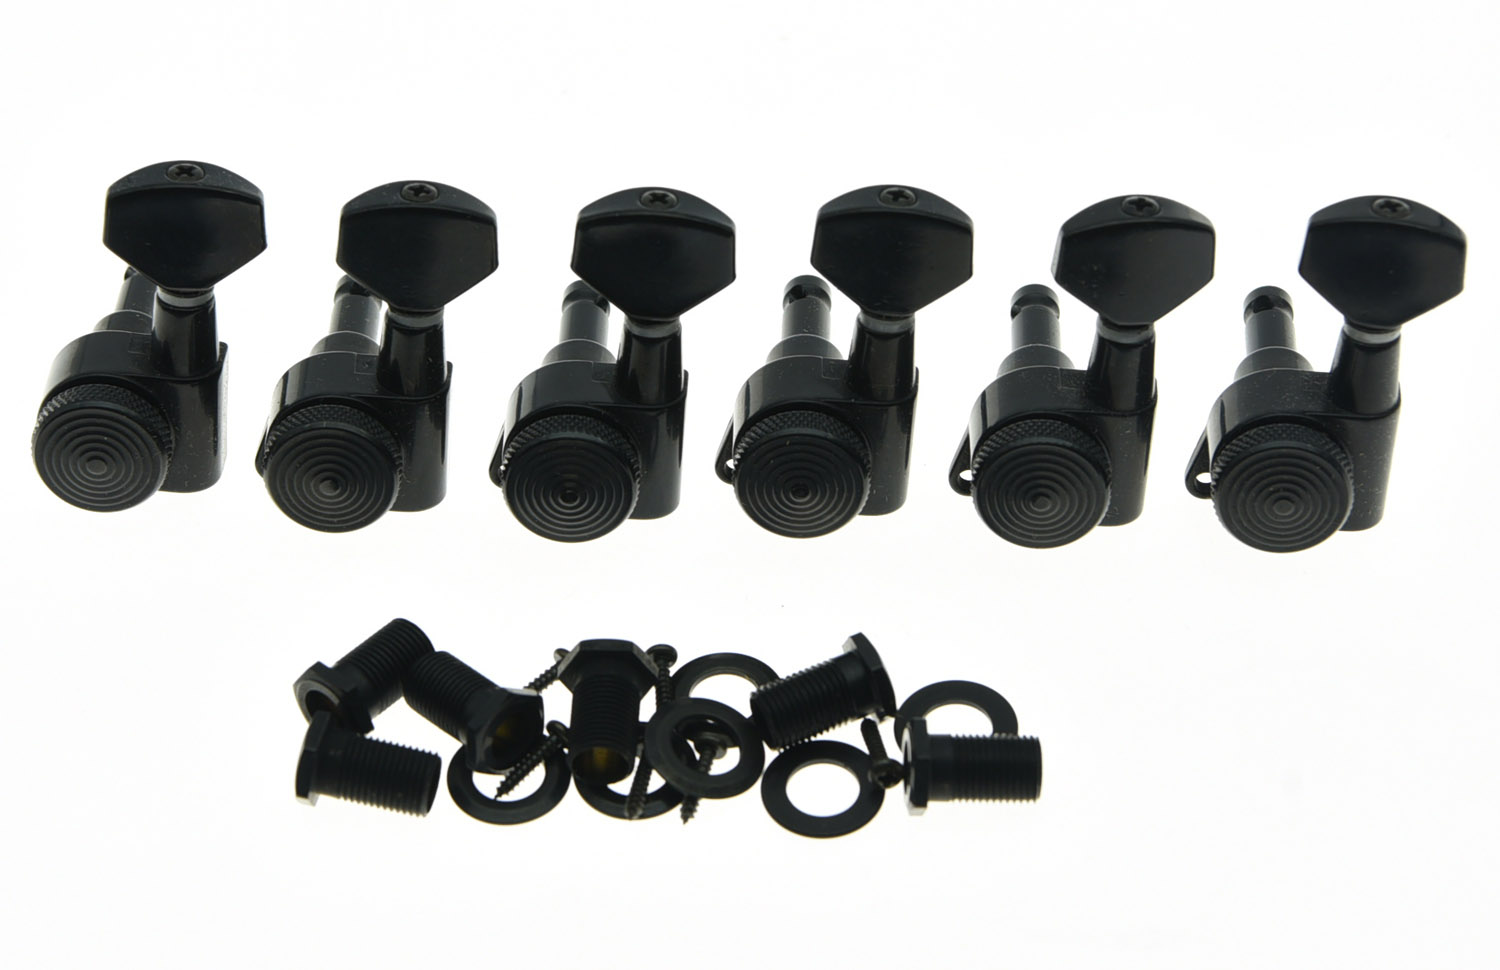 KAISH Left Handed Locking Tuning Keys Guitar Tuners Pegs Machine Heads Black a set of 6 pcs gun color sealed gear string tuners tuning pegs keys machine heads for guitar